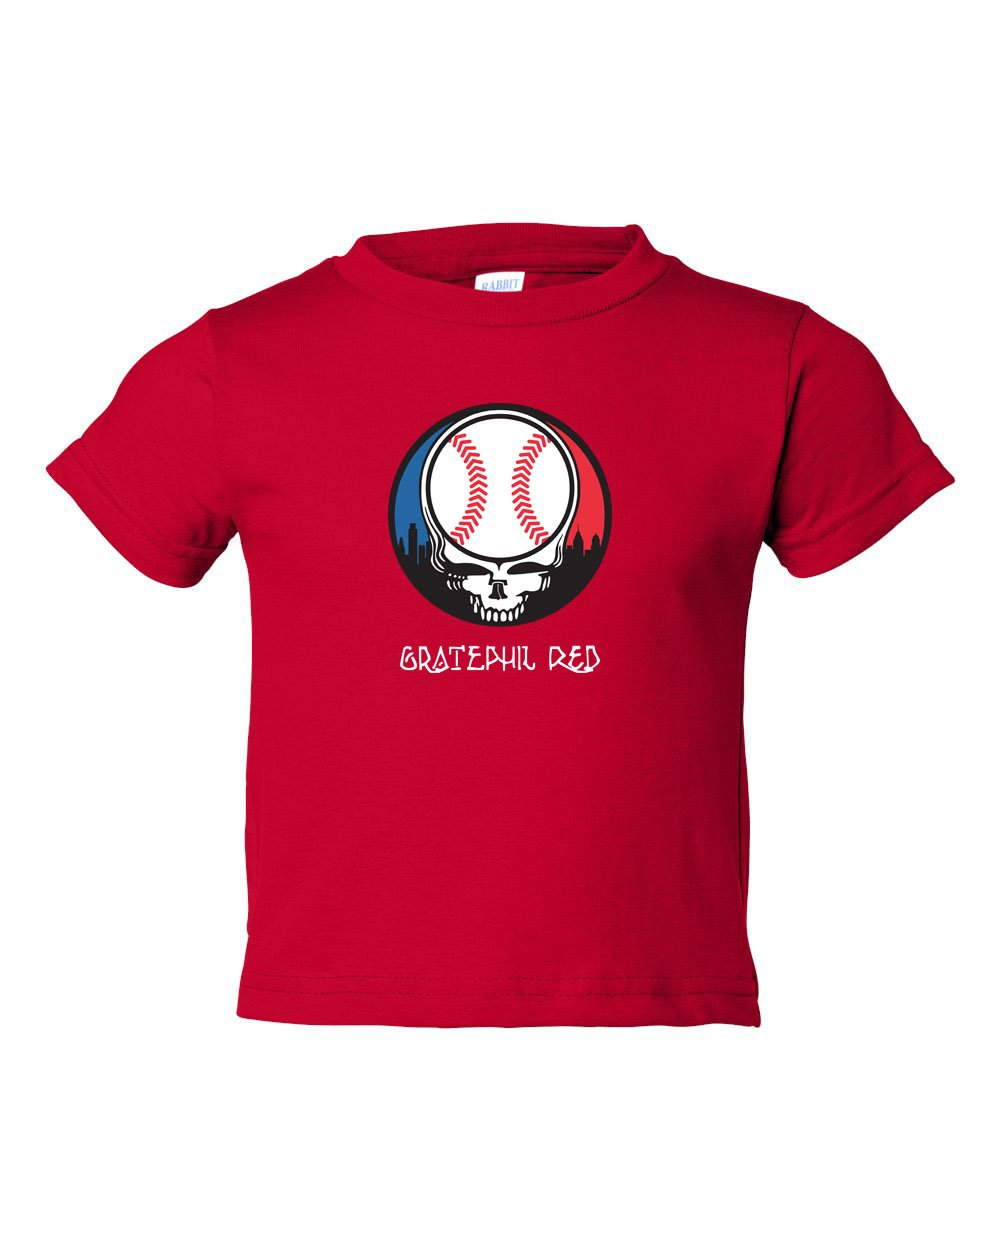 Gratephil Red TODDLER T-Shirt